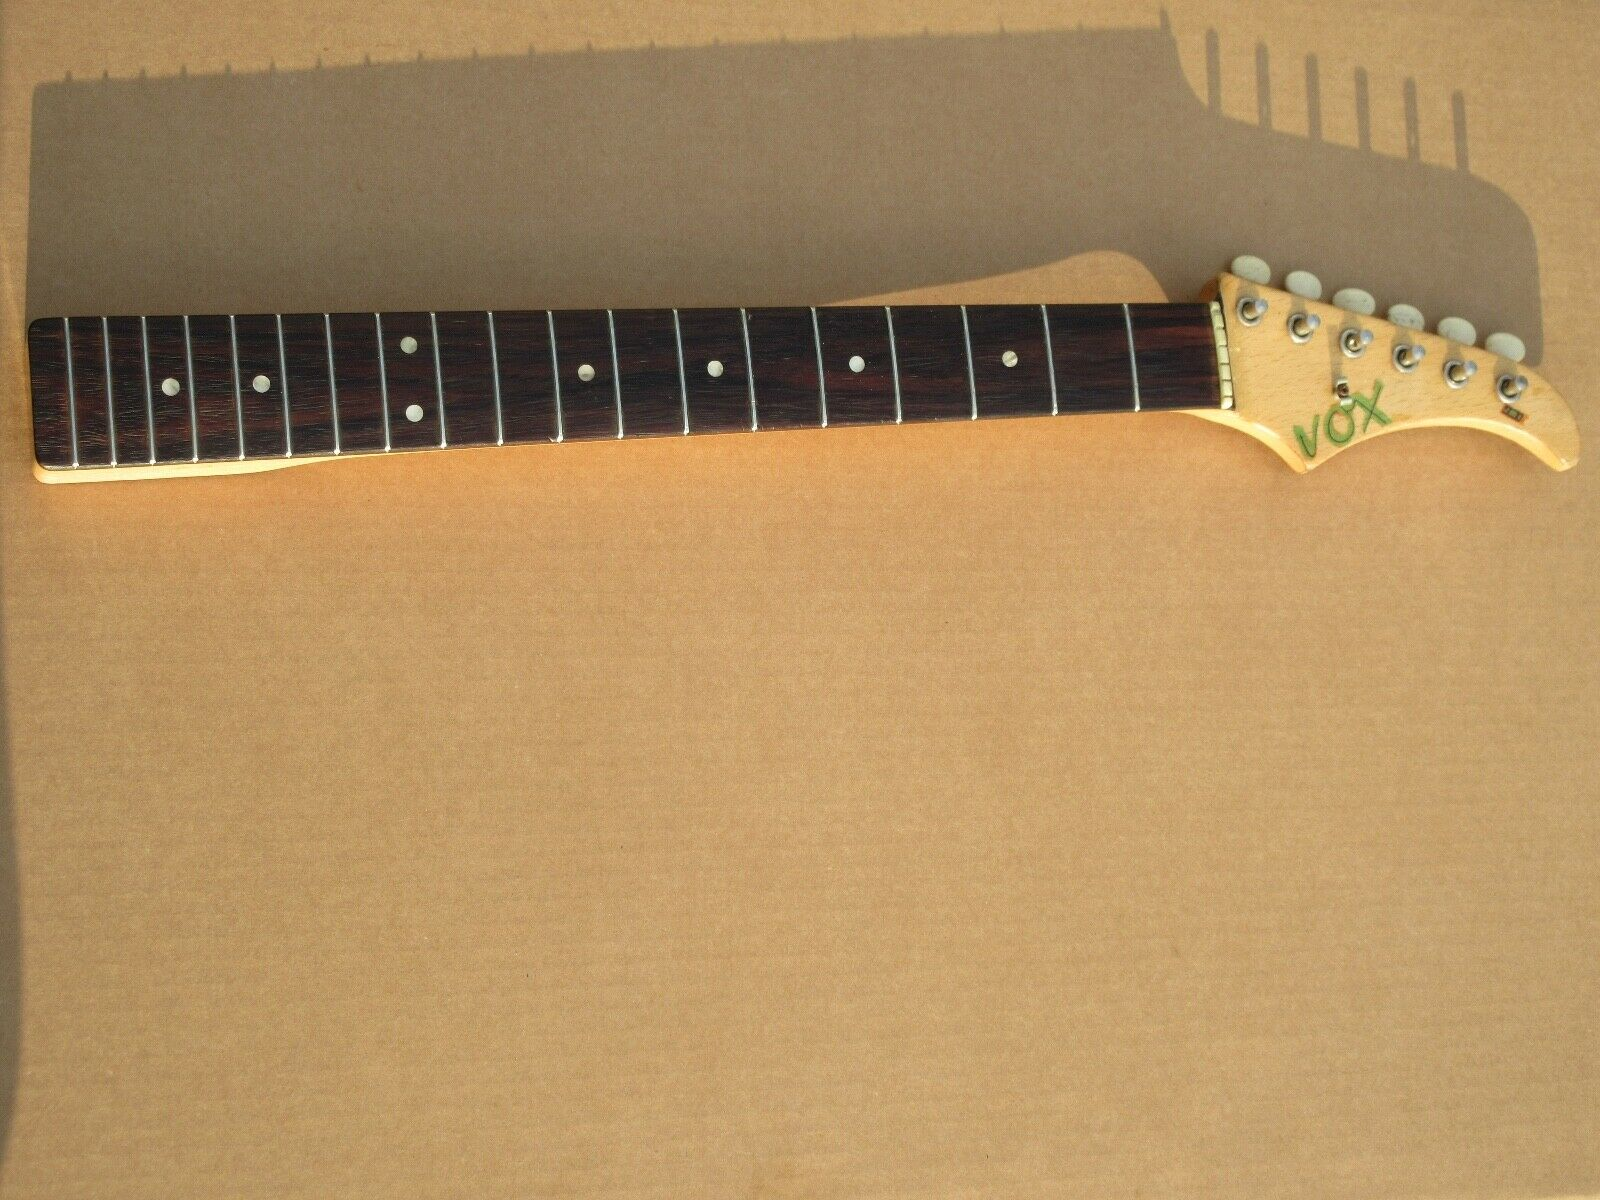 Vintage 1960s Vox JMI Guitar Neck With Tuners